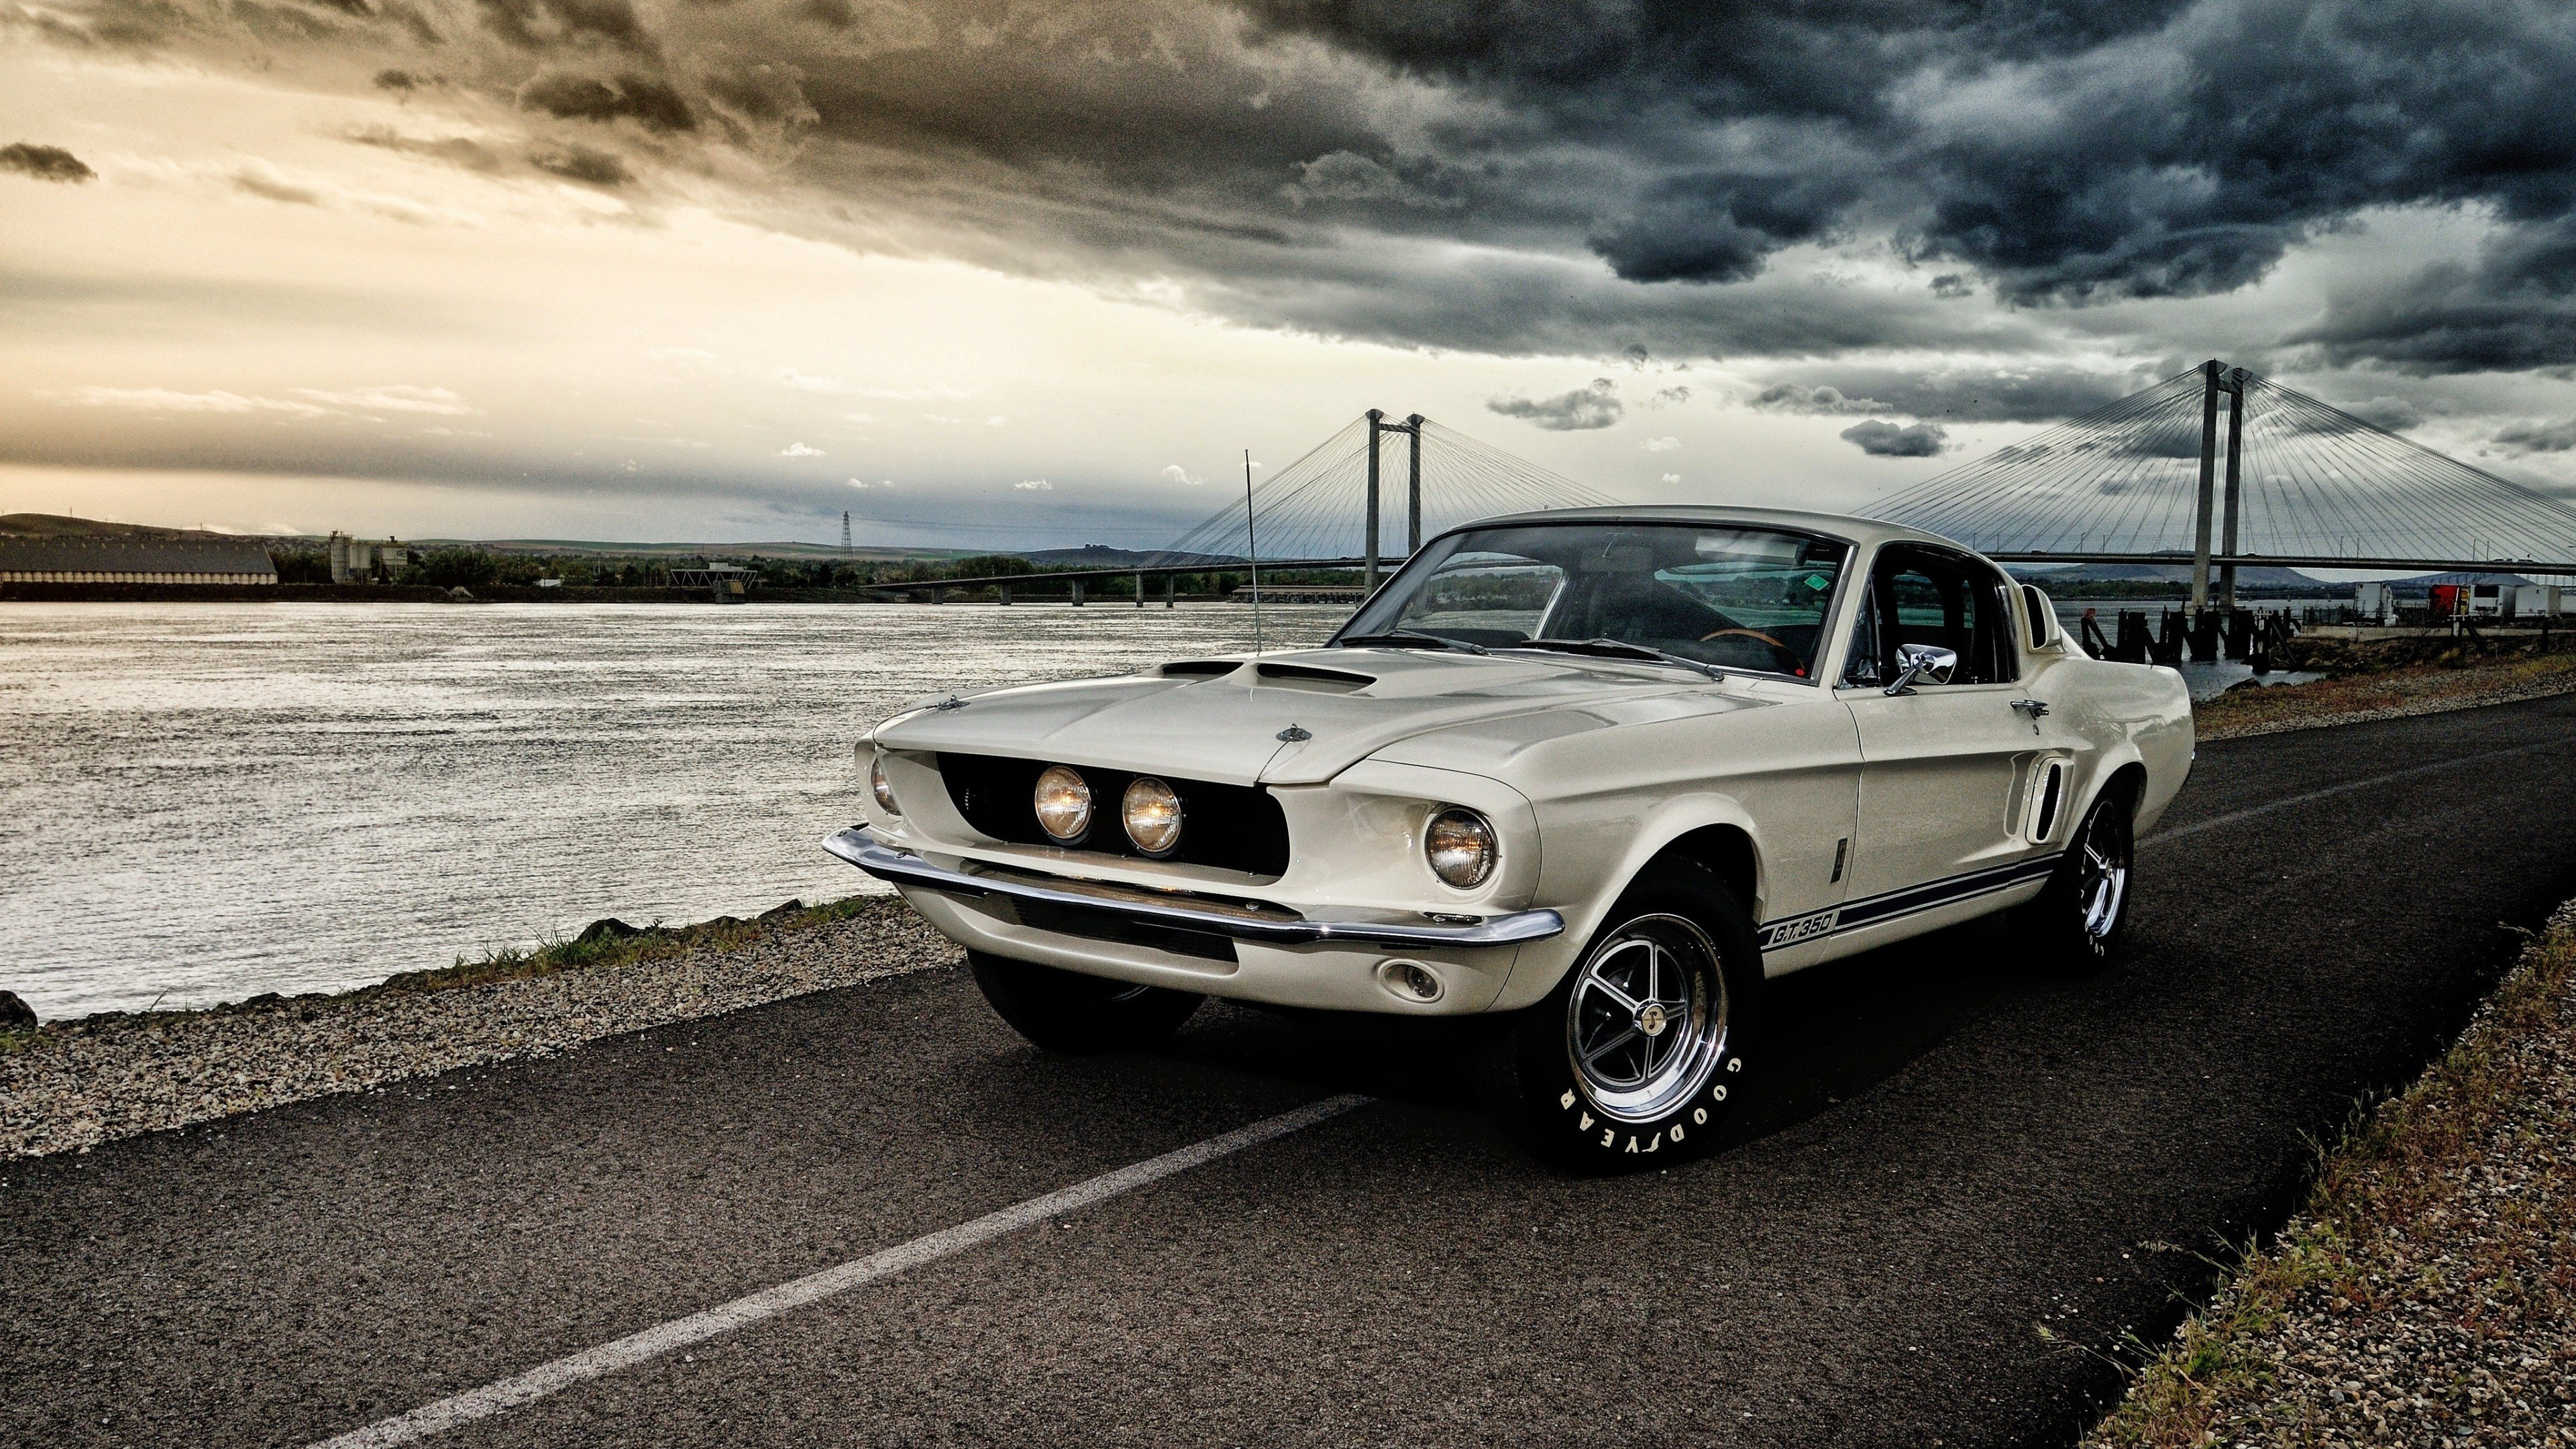 Latest Download 3840X2160 Wallpaper 1967 Ford Mustang Shelby Free Download